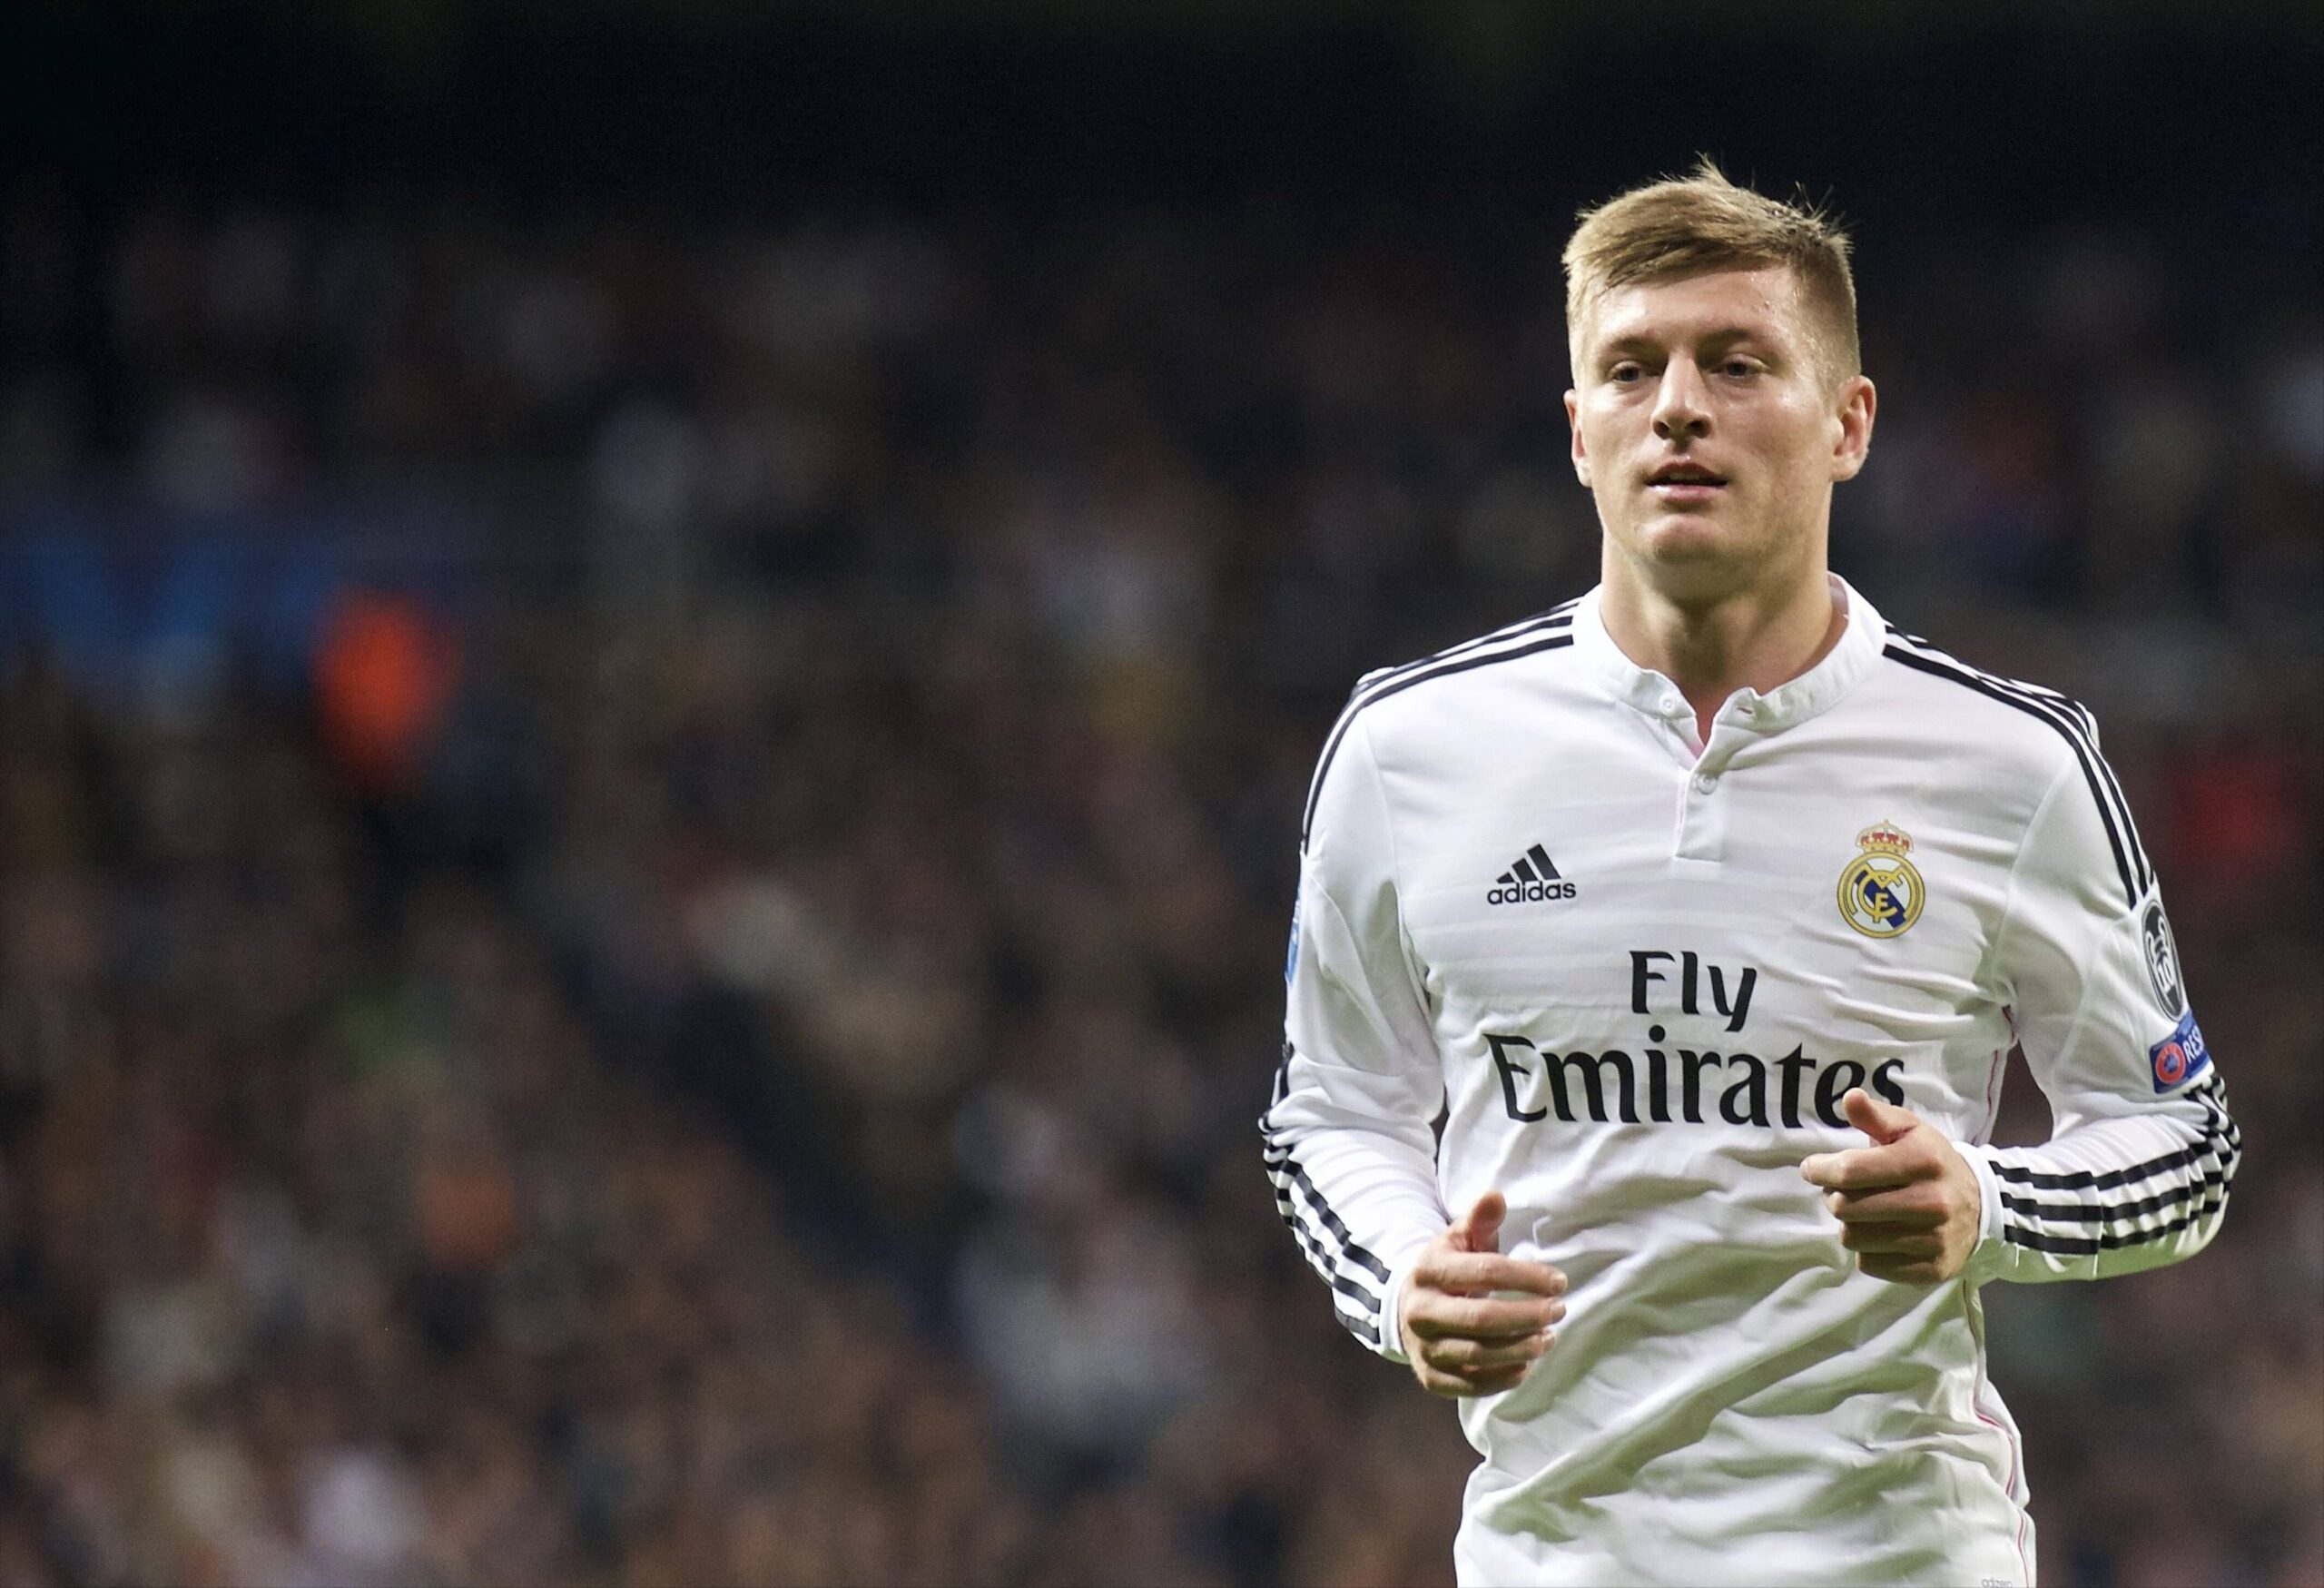 Pictures of Toni Kroos